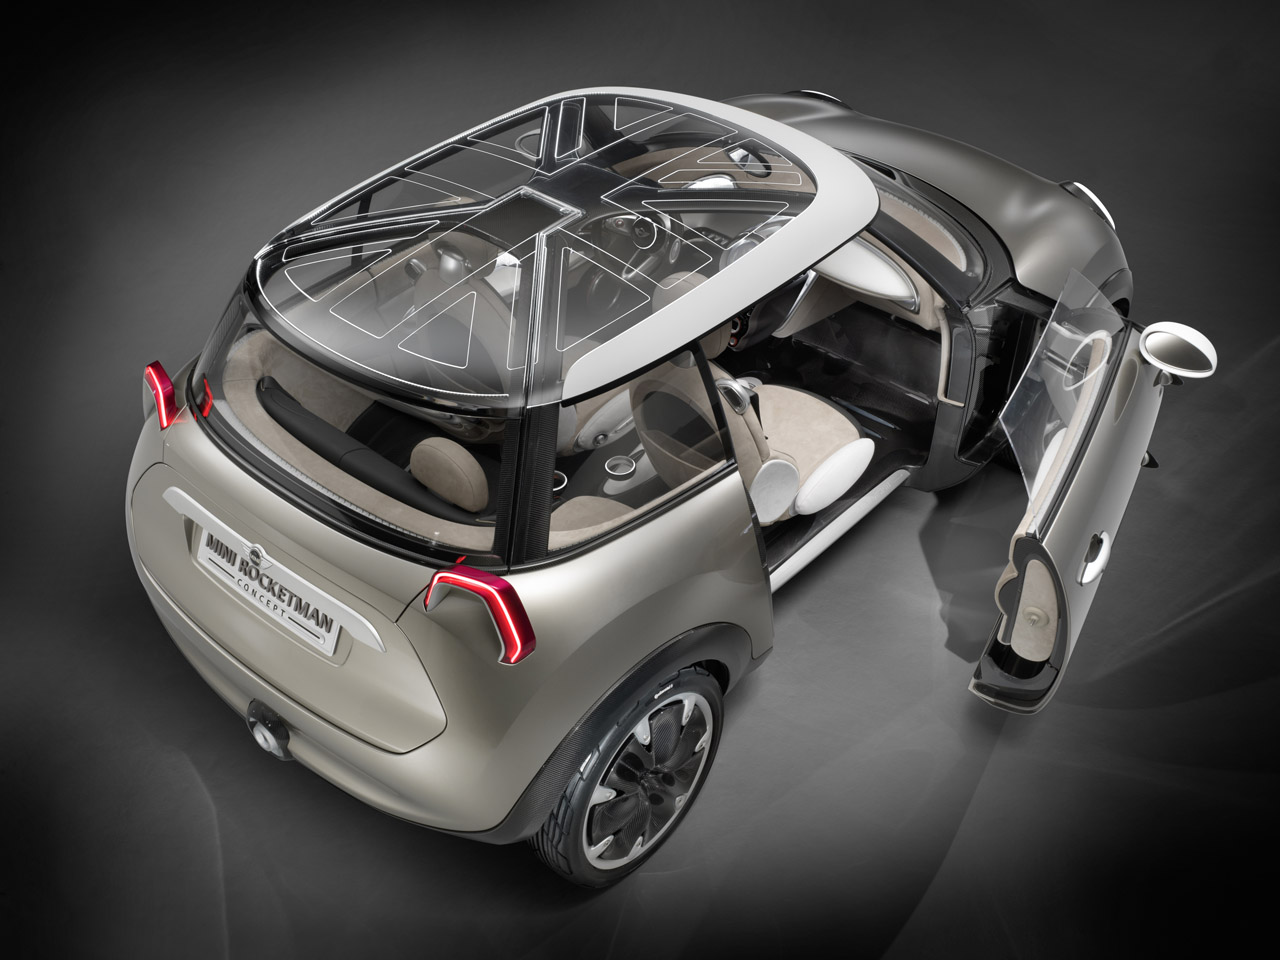 Mini rocketman concept 10 The Rocket Man Steals the Show, may go to production on 2014